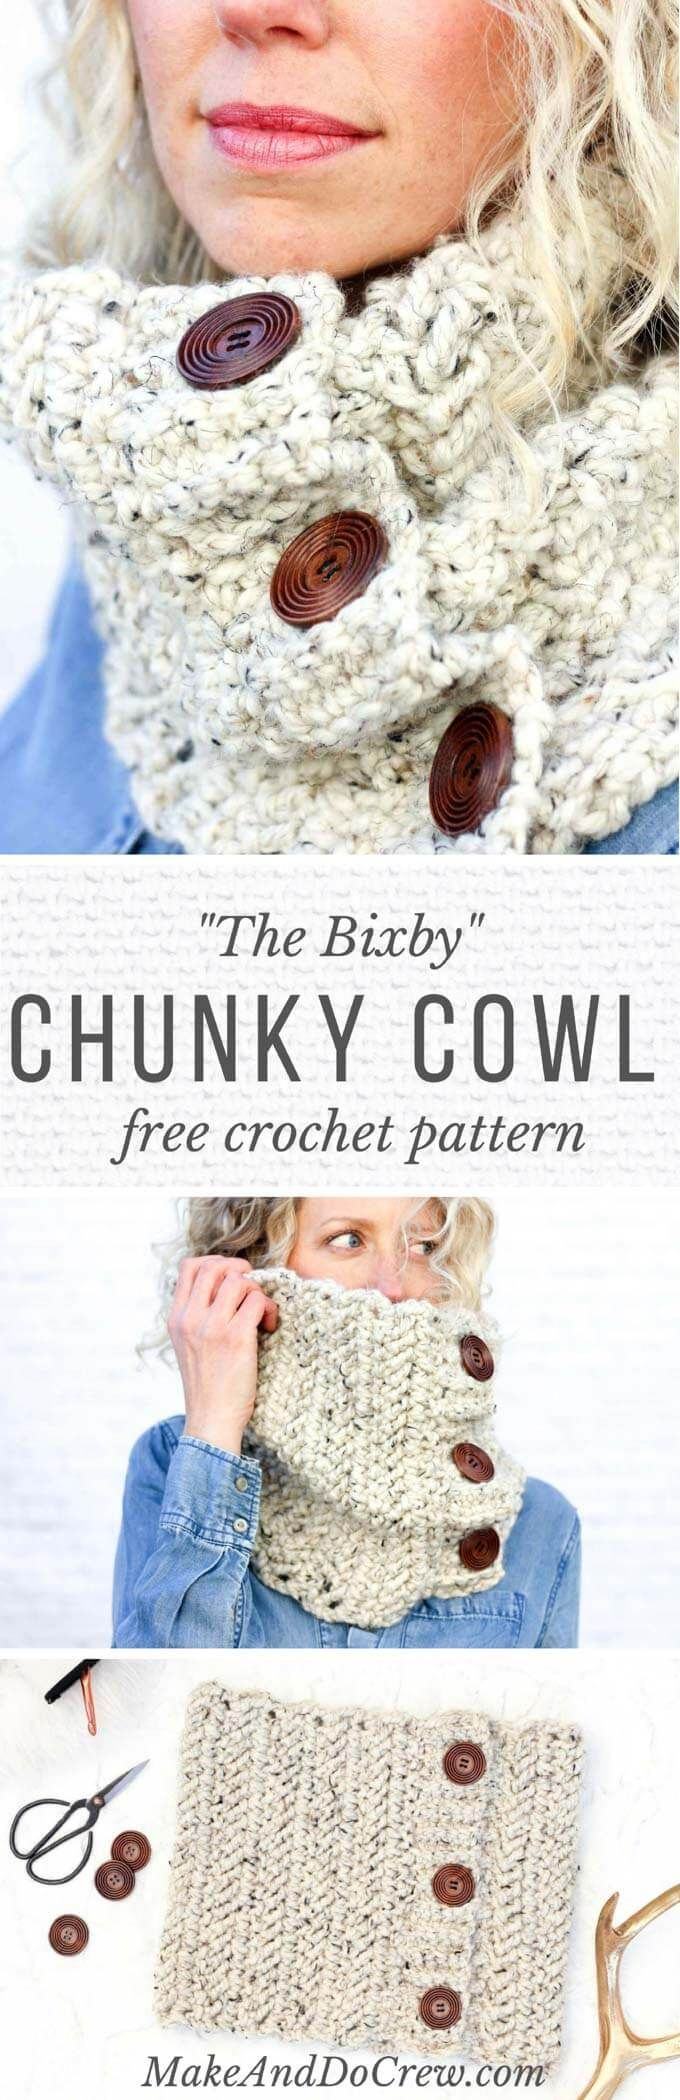 Best 25 crochet cowls ideas on pinterest crochet cowl patterns free crochet cowl pattern bankloansurffo Gallery